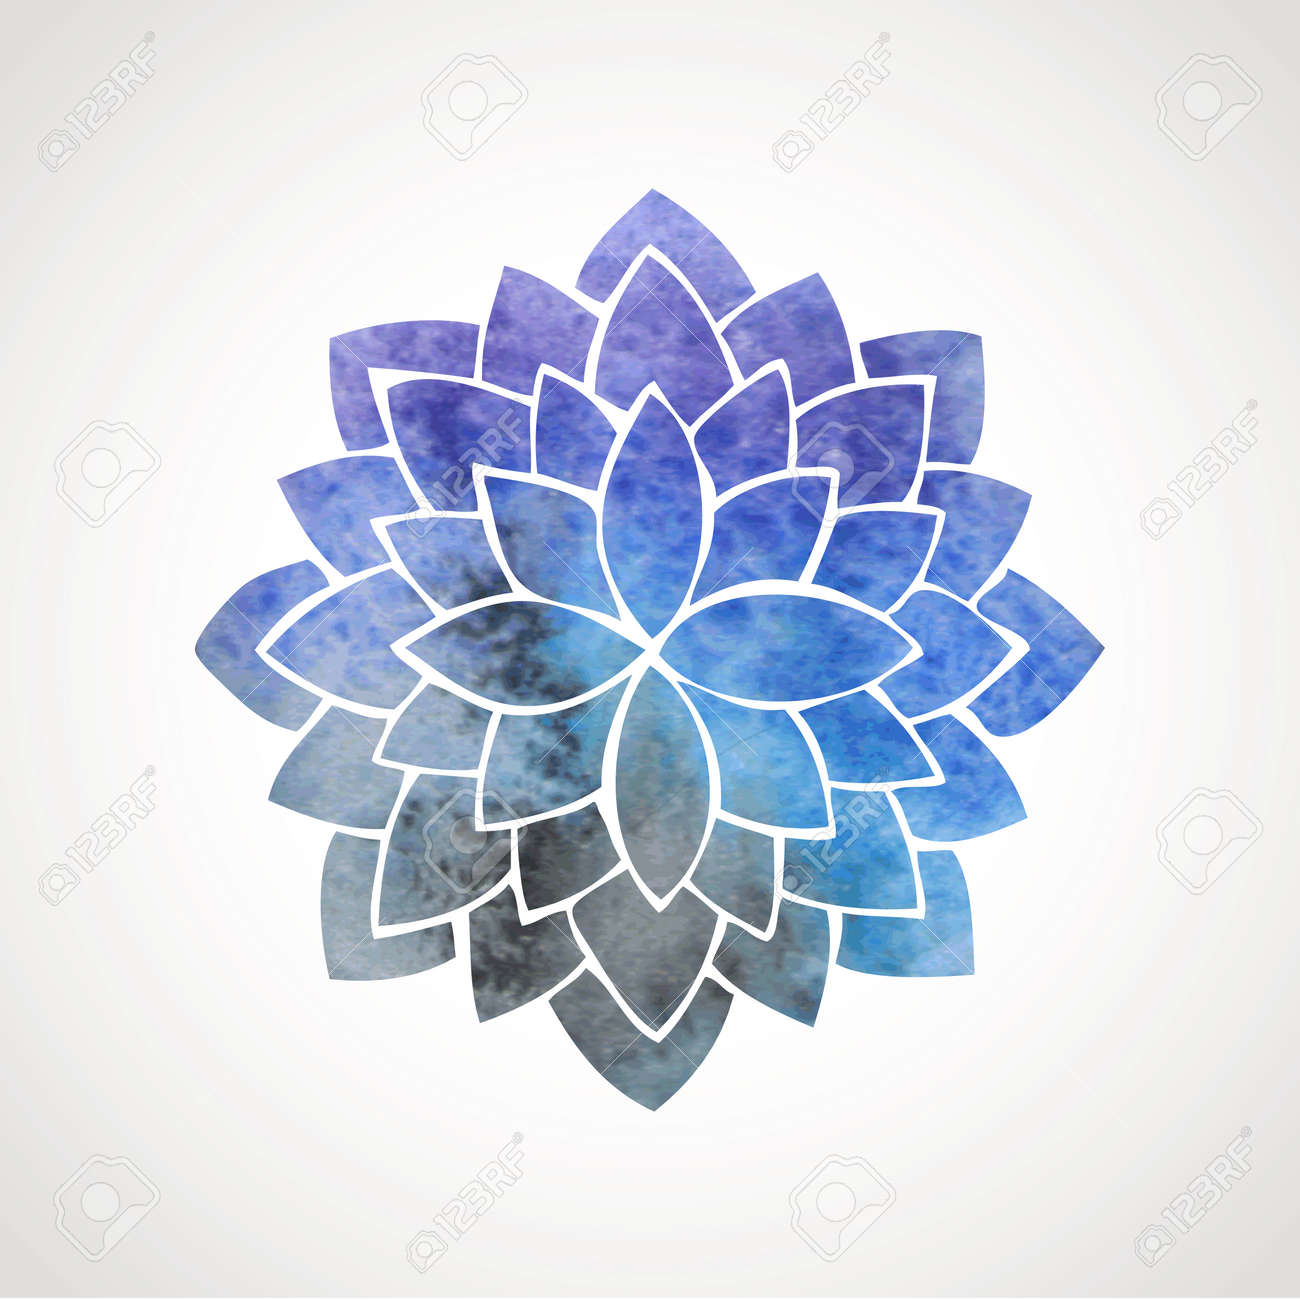 4819 Blue Lotus Cliparts Stock Vector And Royalty Free Blue Lotus